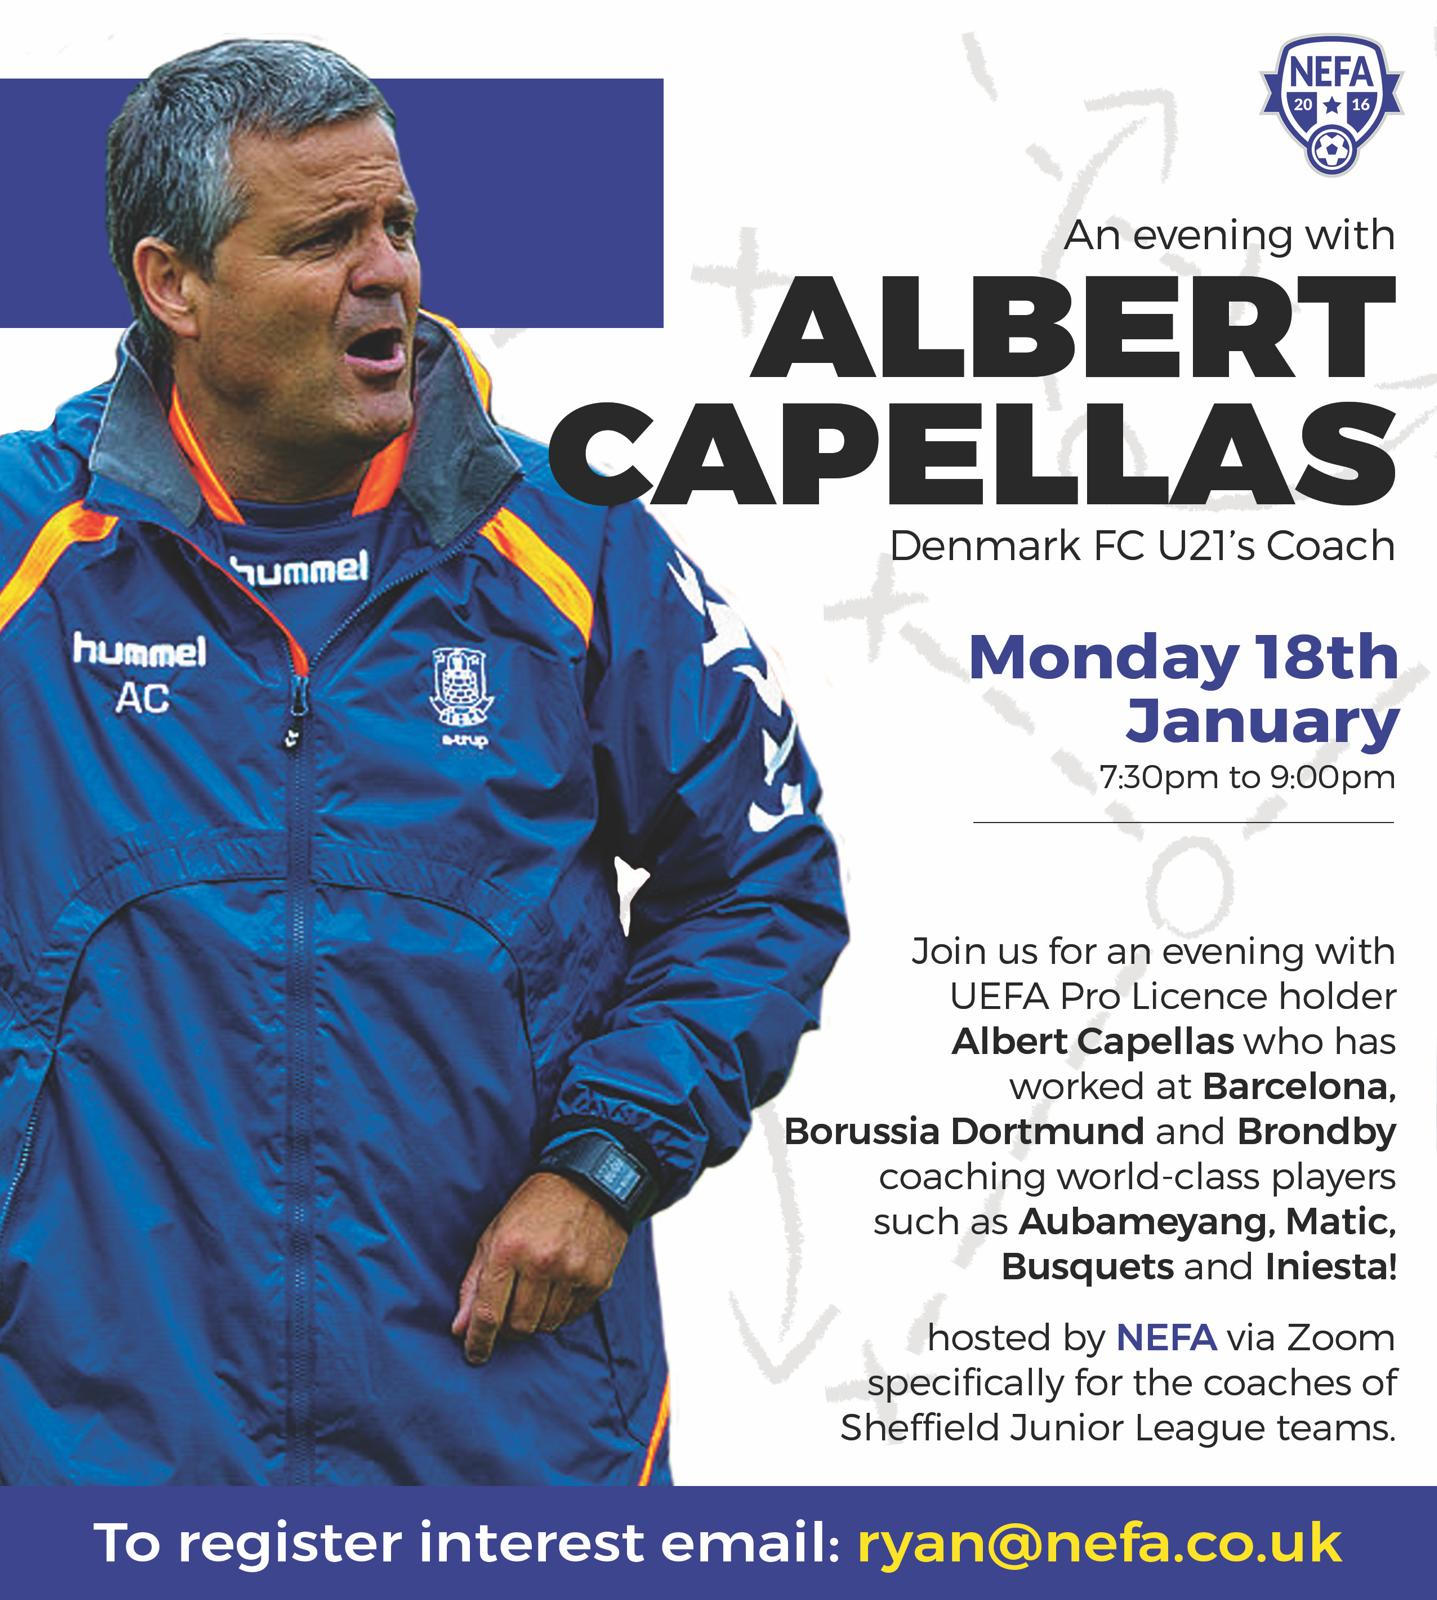 NEFA PRESENT AN EVENING WITH ALBERT CAPELLAS